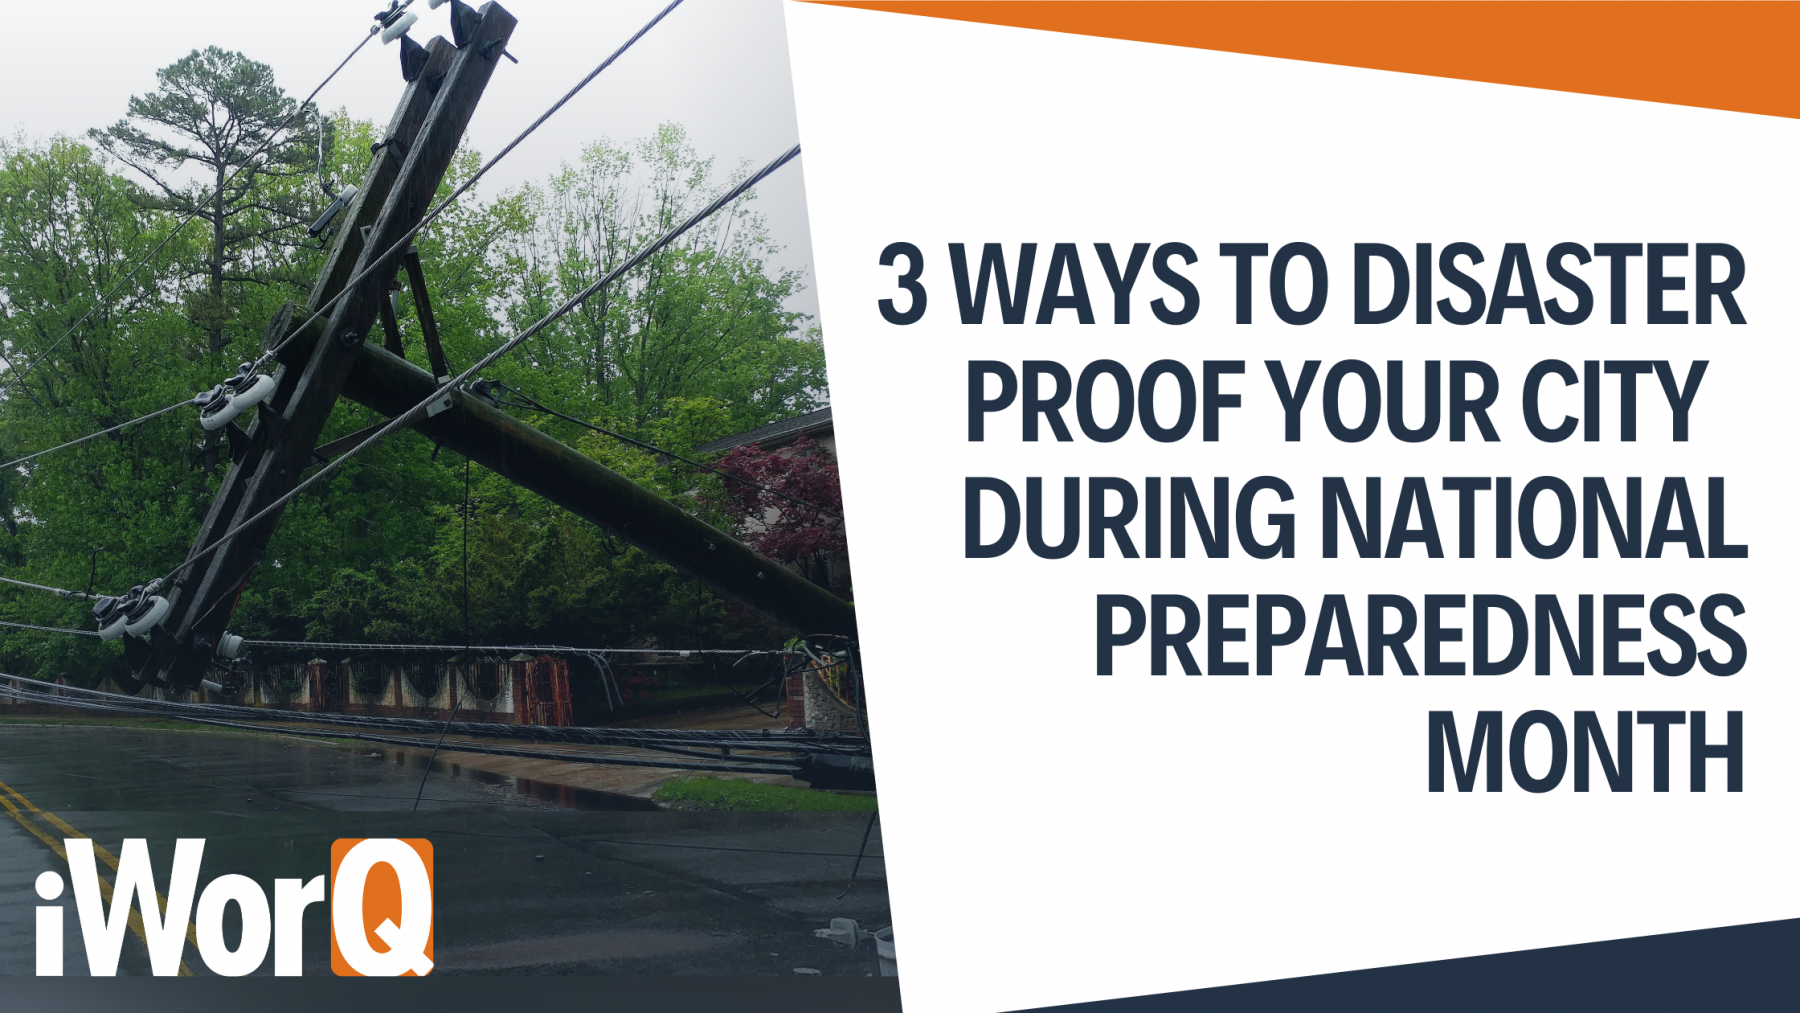 3 Ways to Disaster Proof Your City During National Preparedness Month